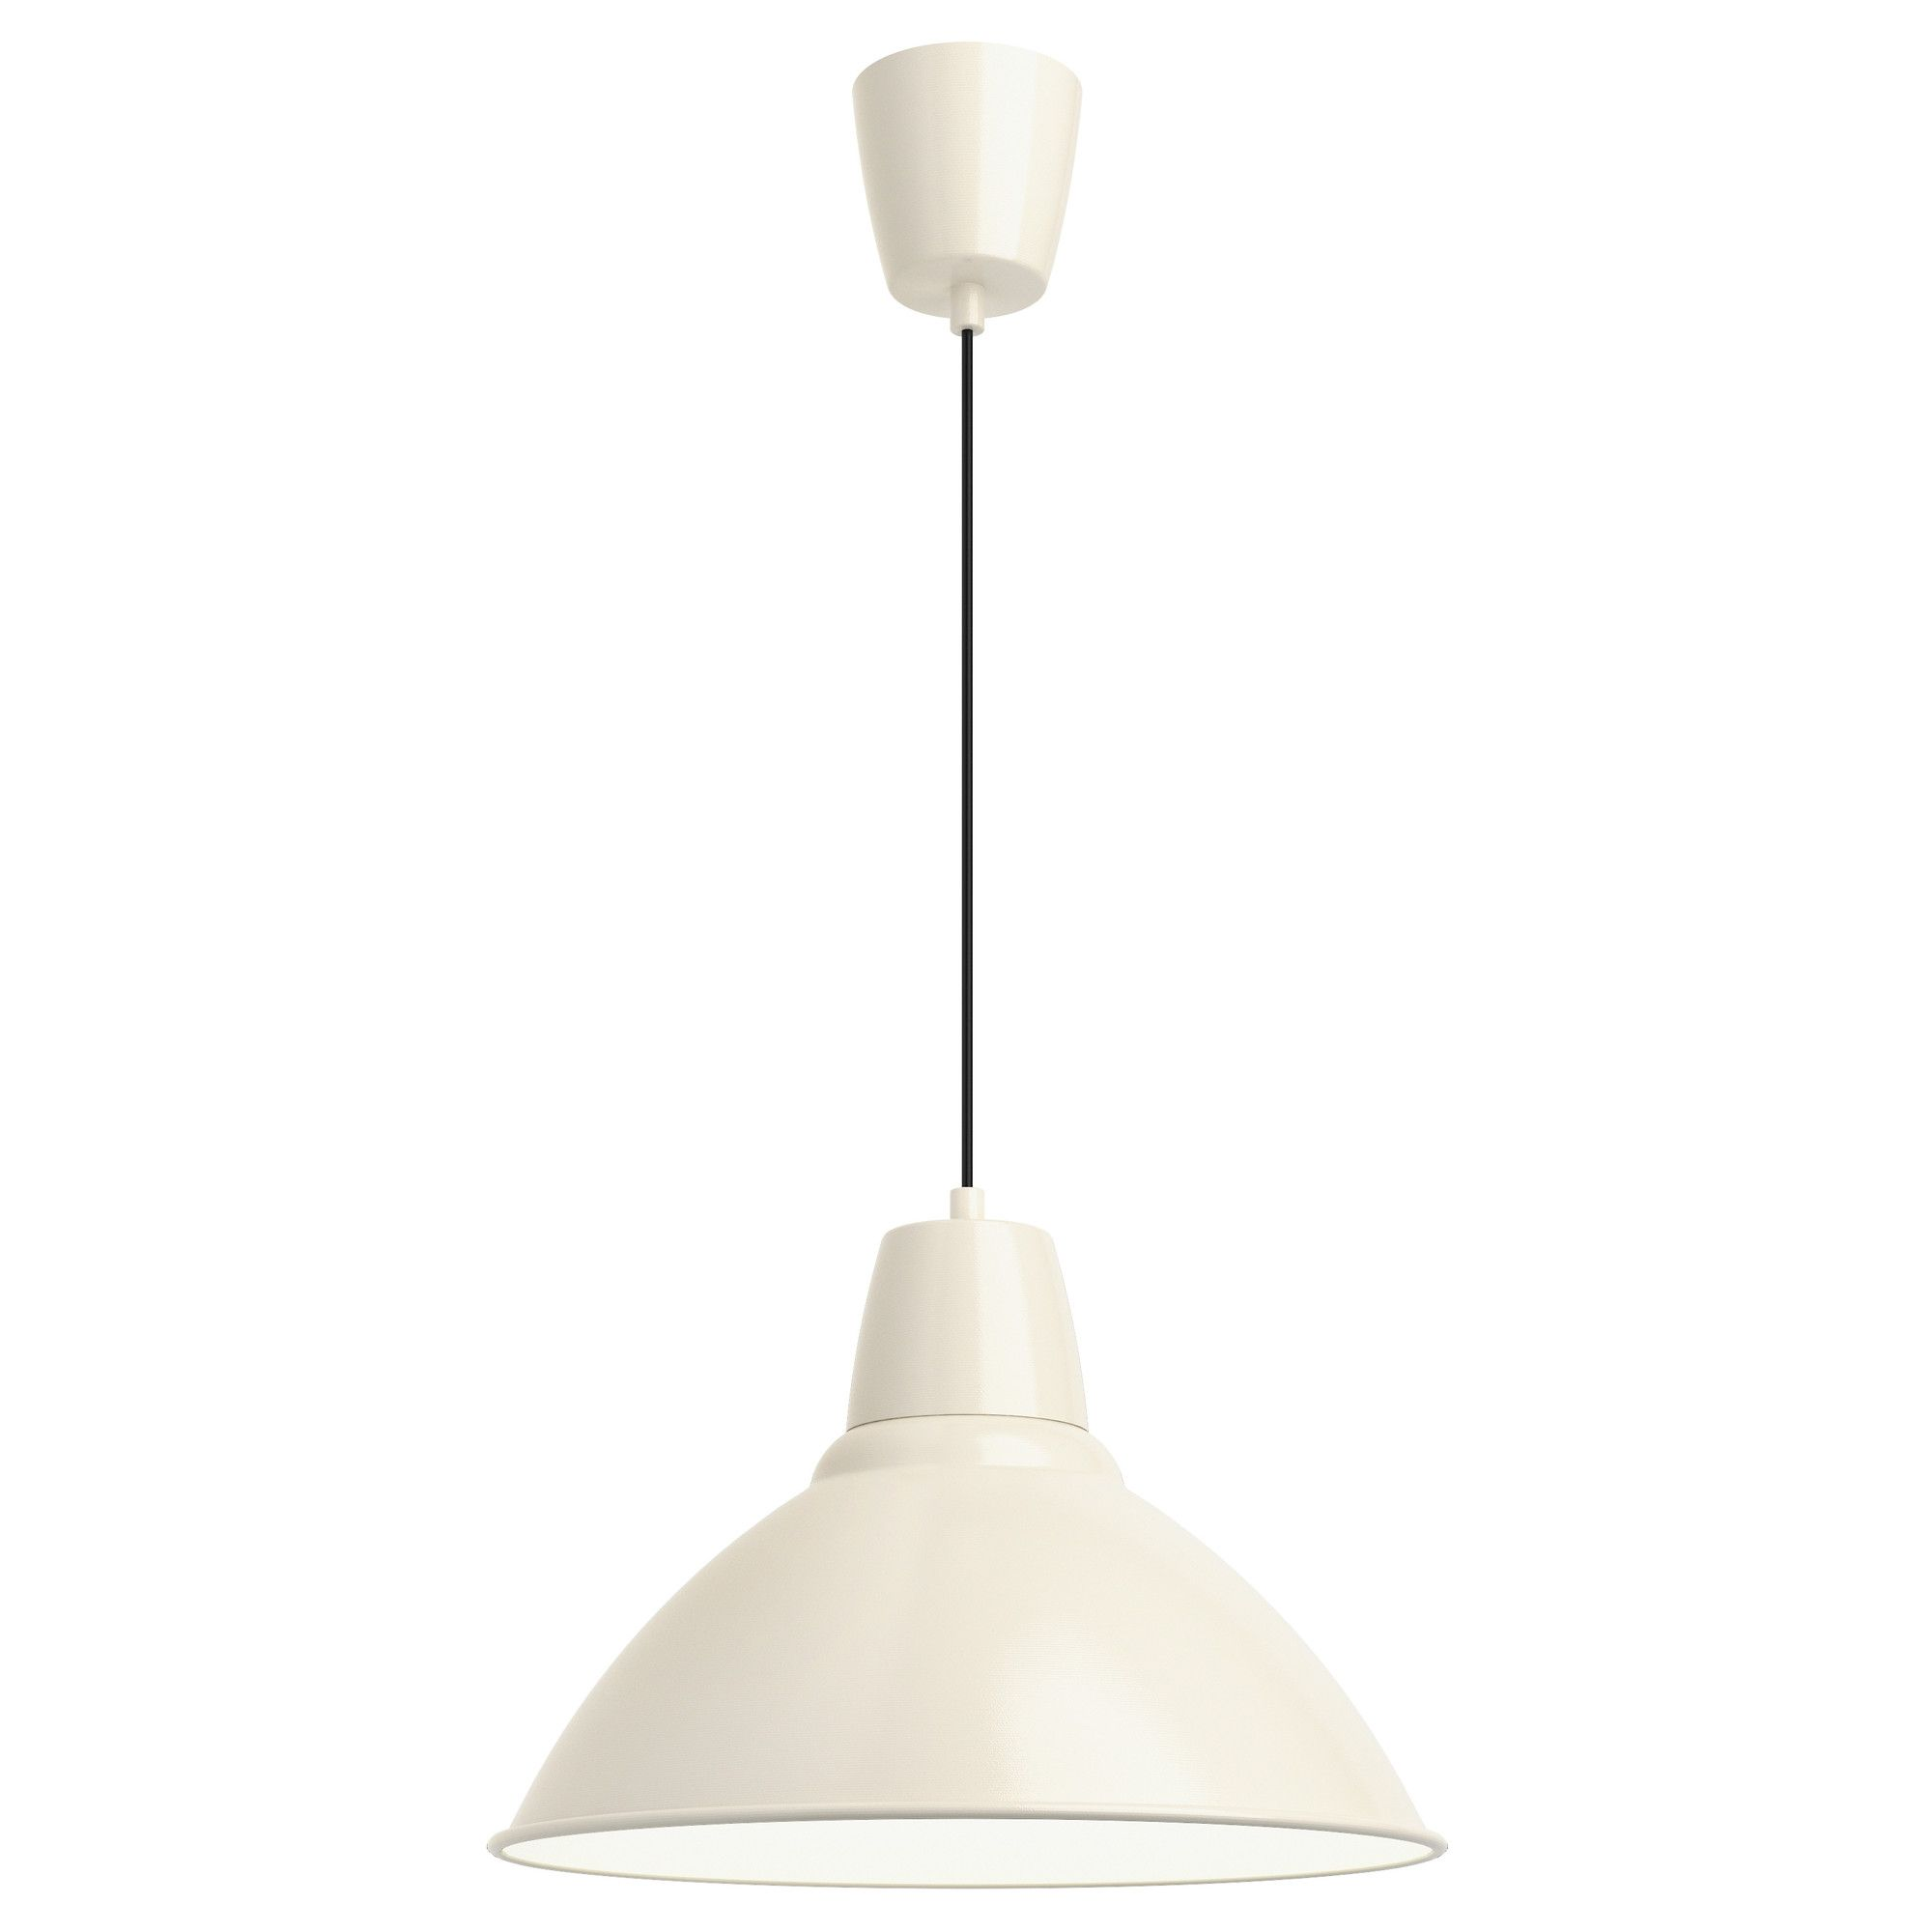 Foto pendant lamp ikea for over pool table can hang out of the